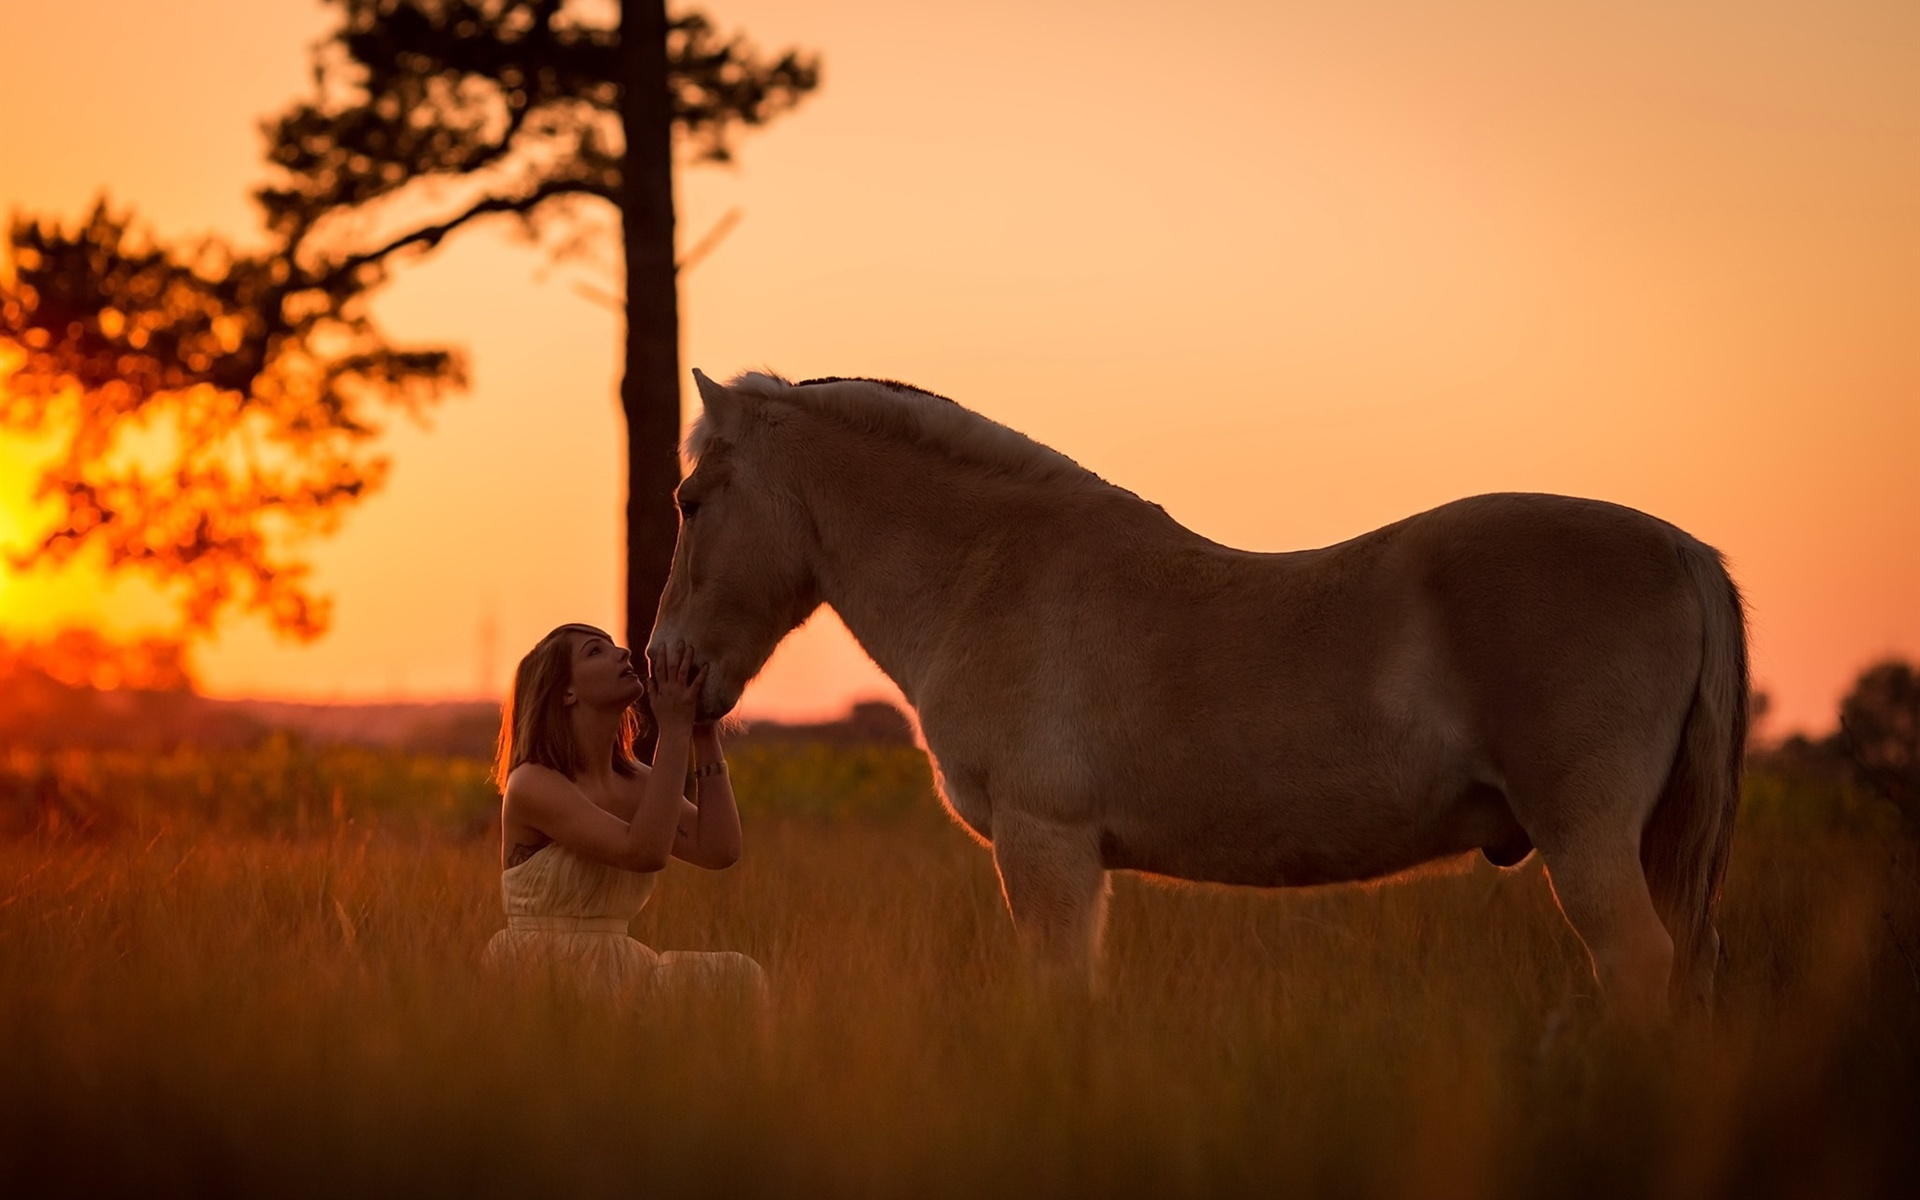 Wallpaper Girl And Horse At Sunset 1920x1200 Hd Picture Image